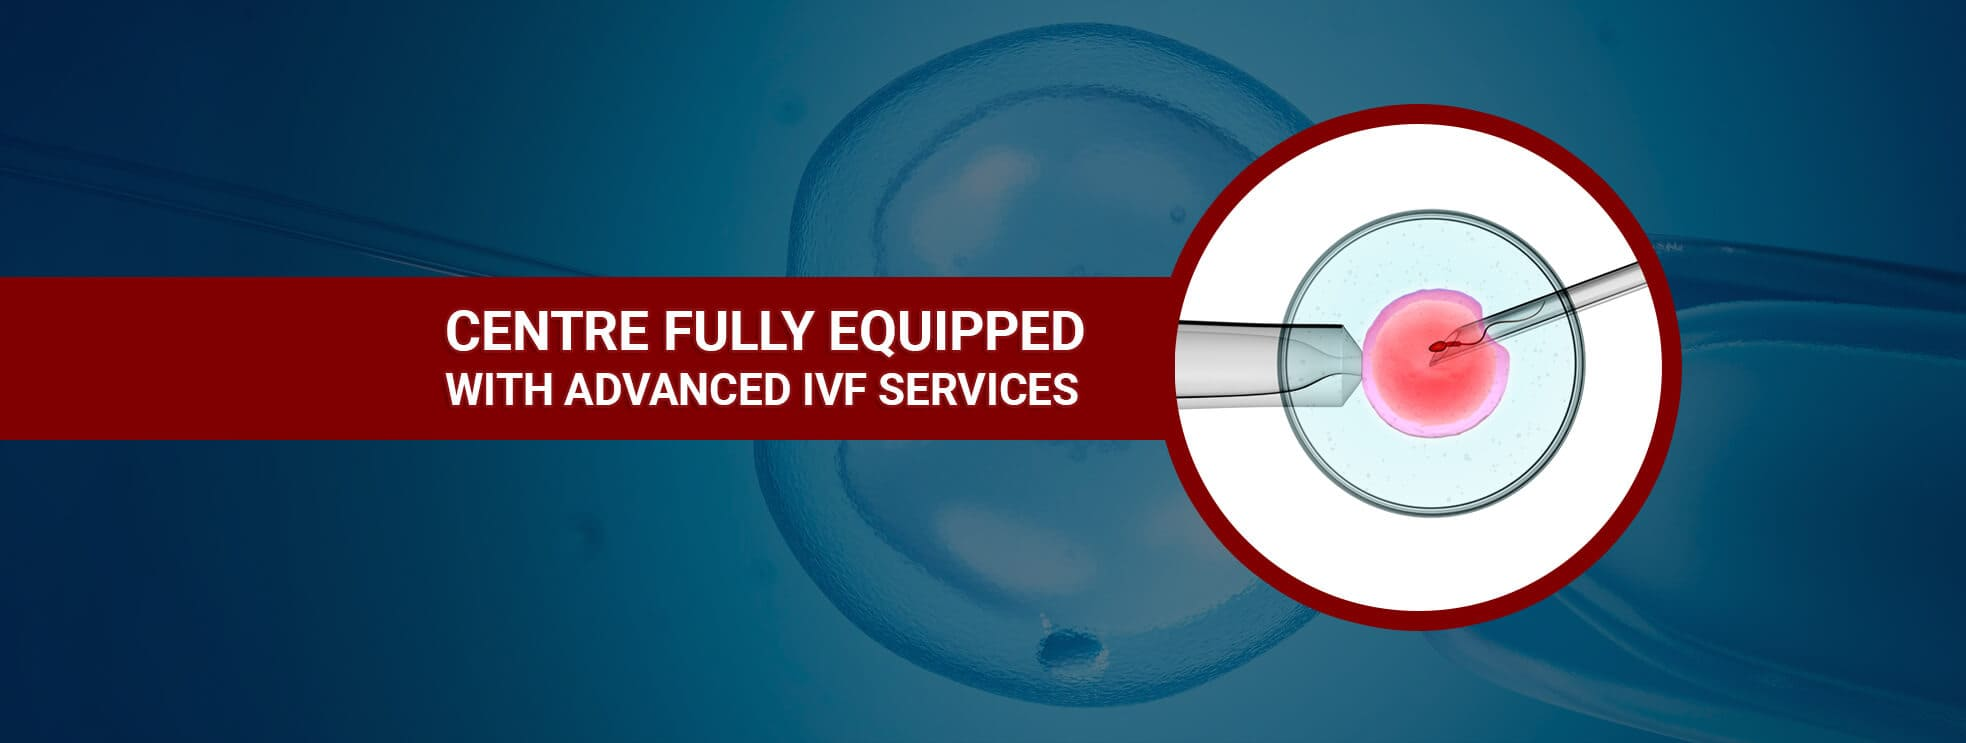 Center fully equipped with advanced services